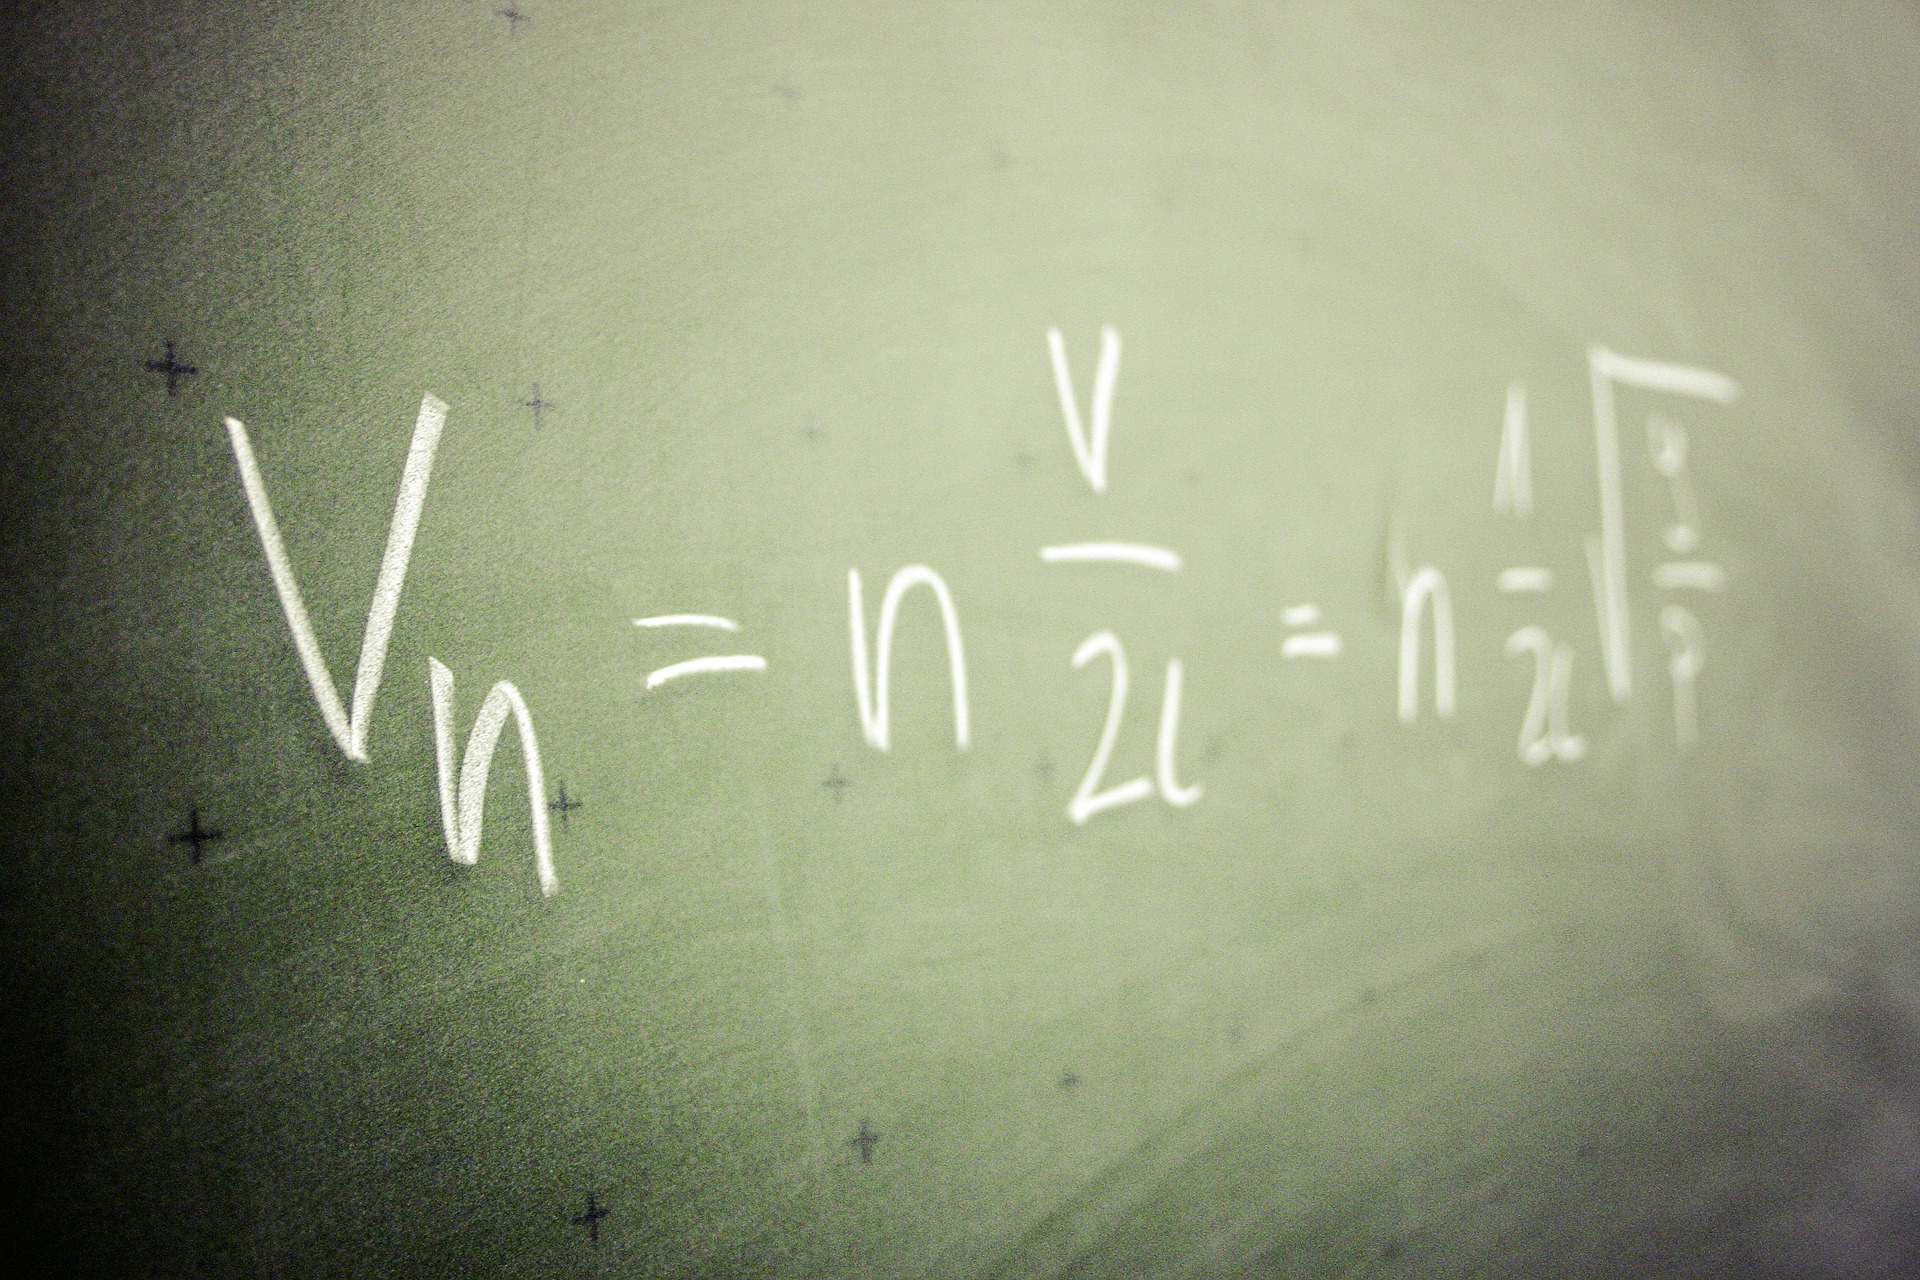 Formules calcul viager